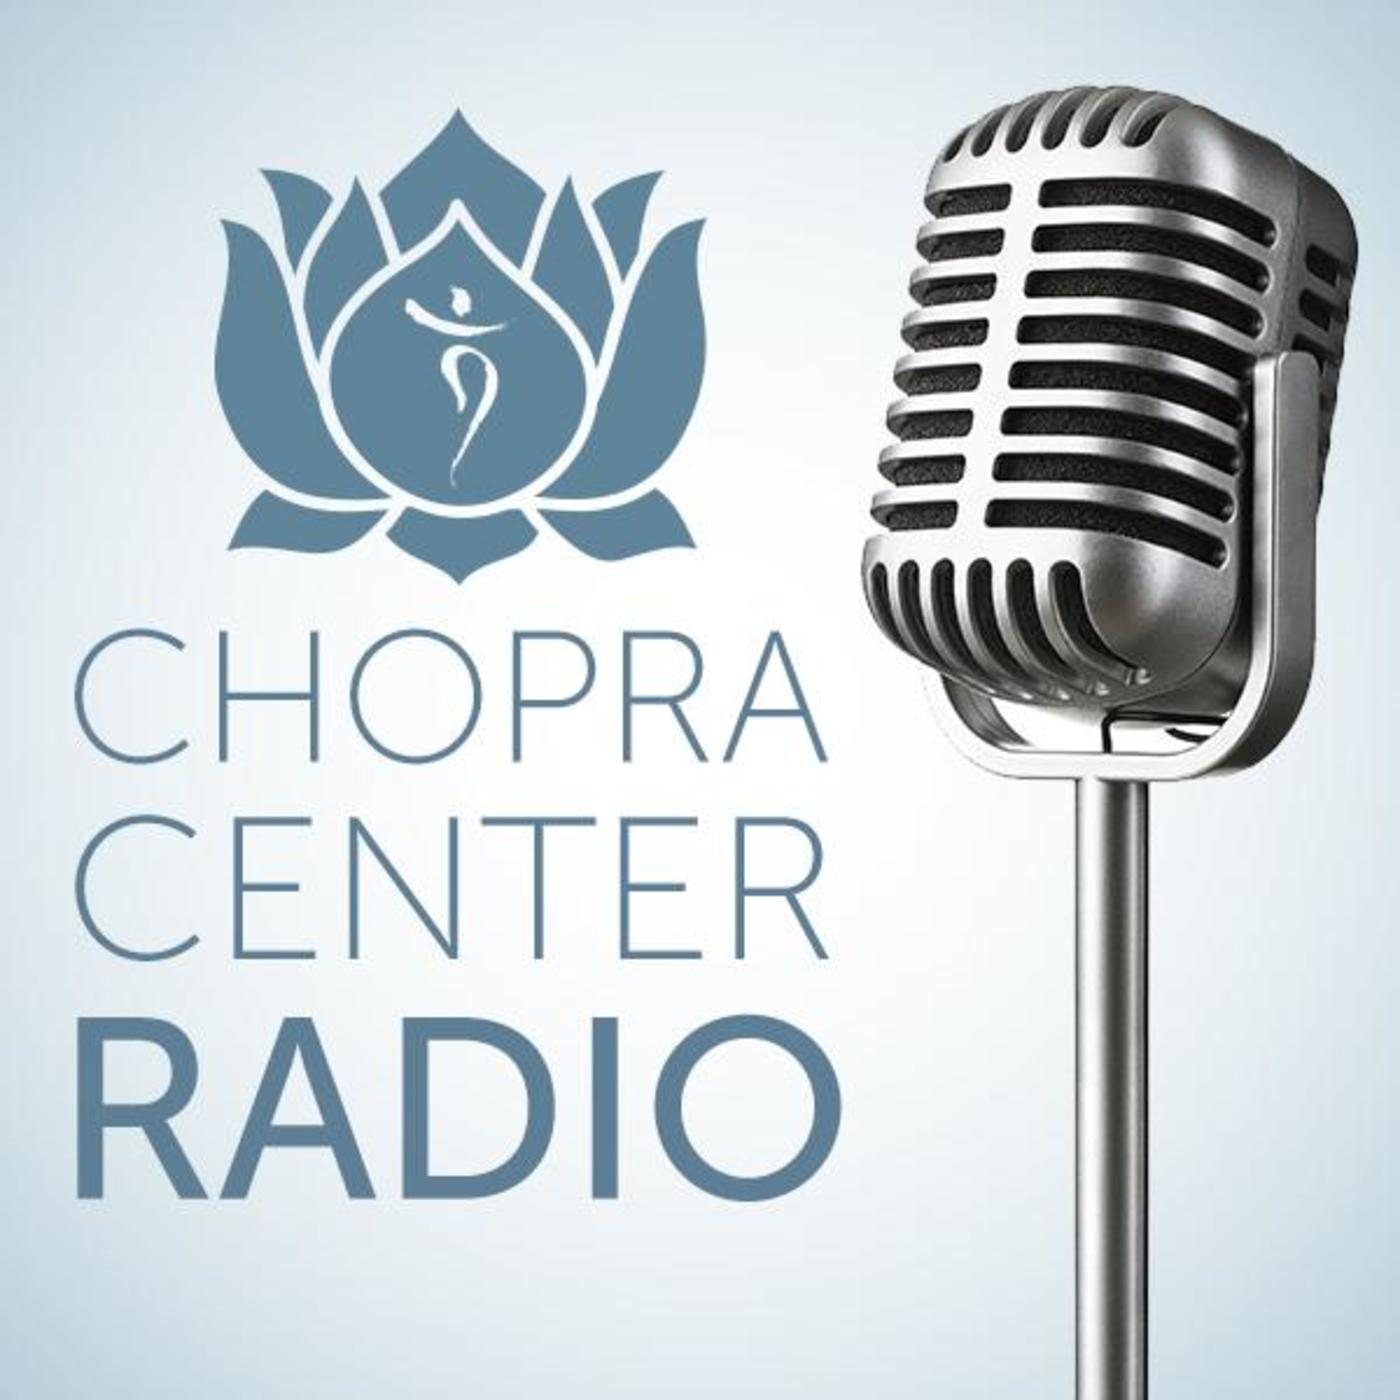 Welcome to Chopra Center Radio